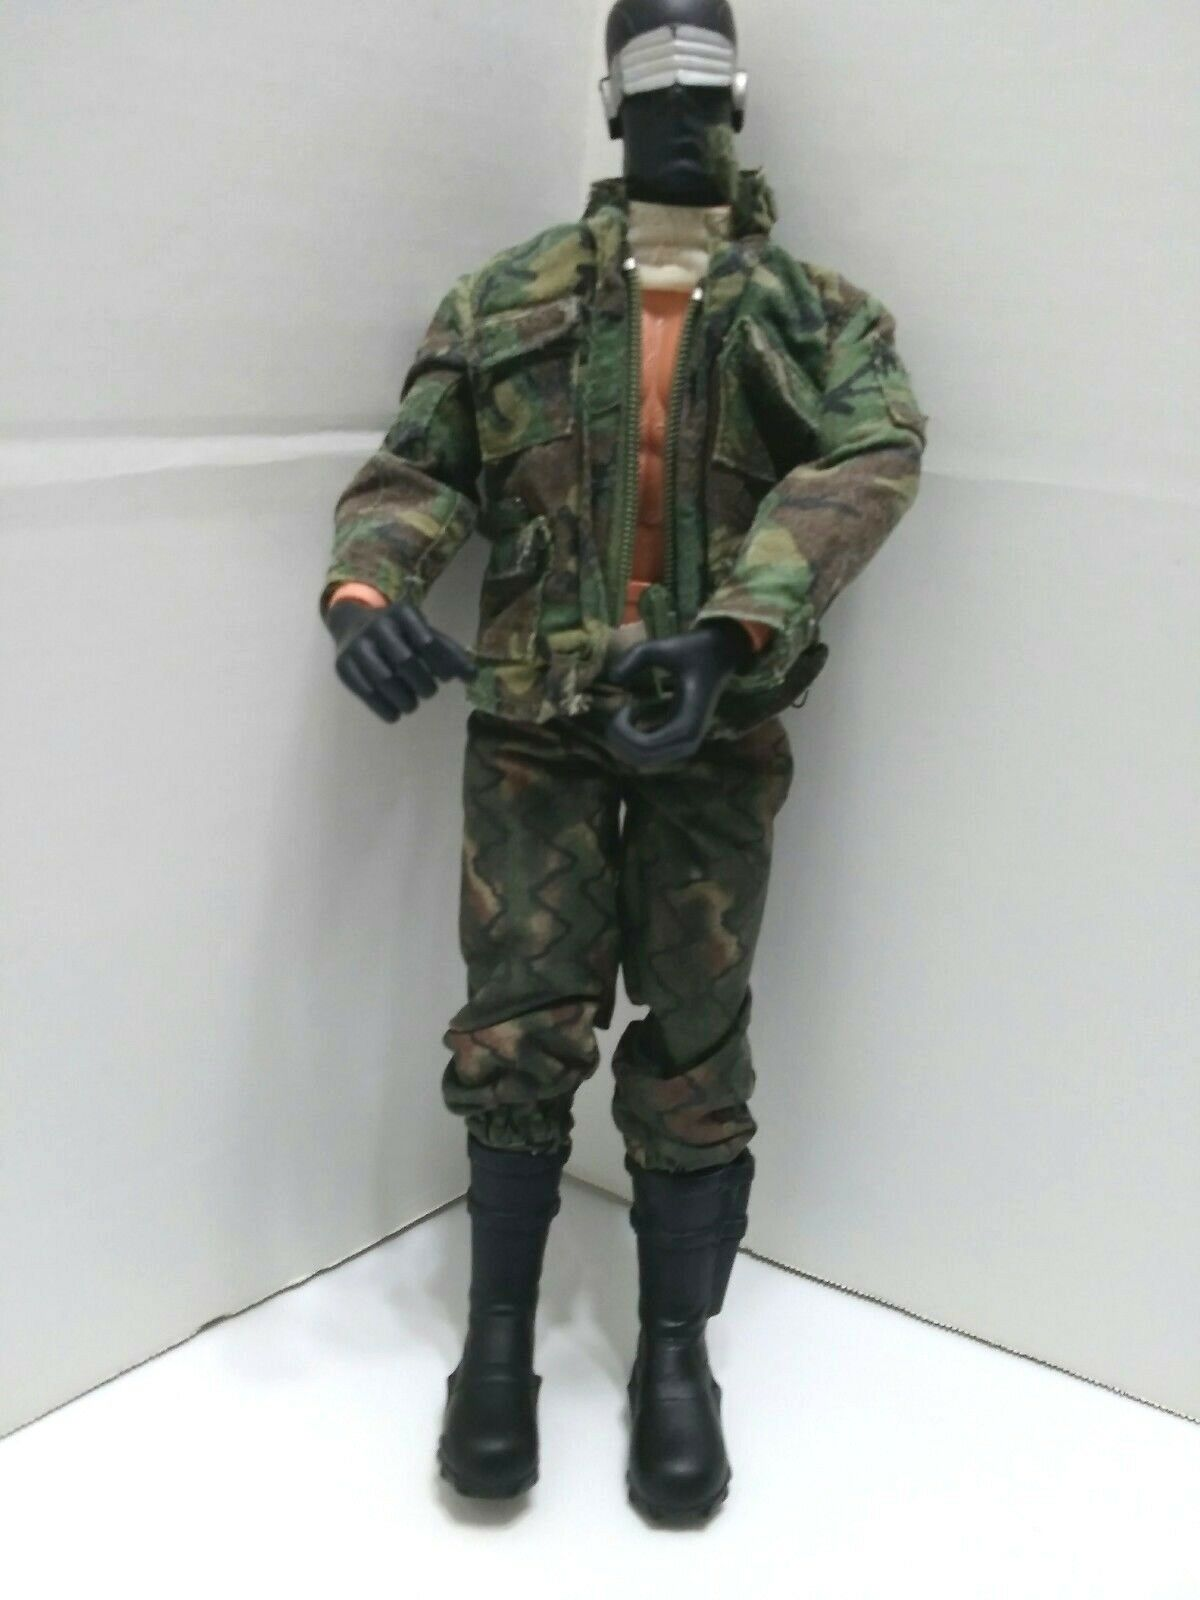 21st Century Toys Figure Military Action Figure Male Toy